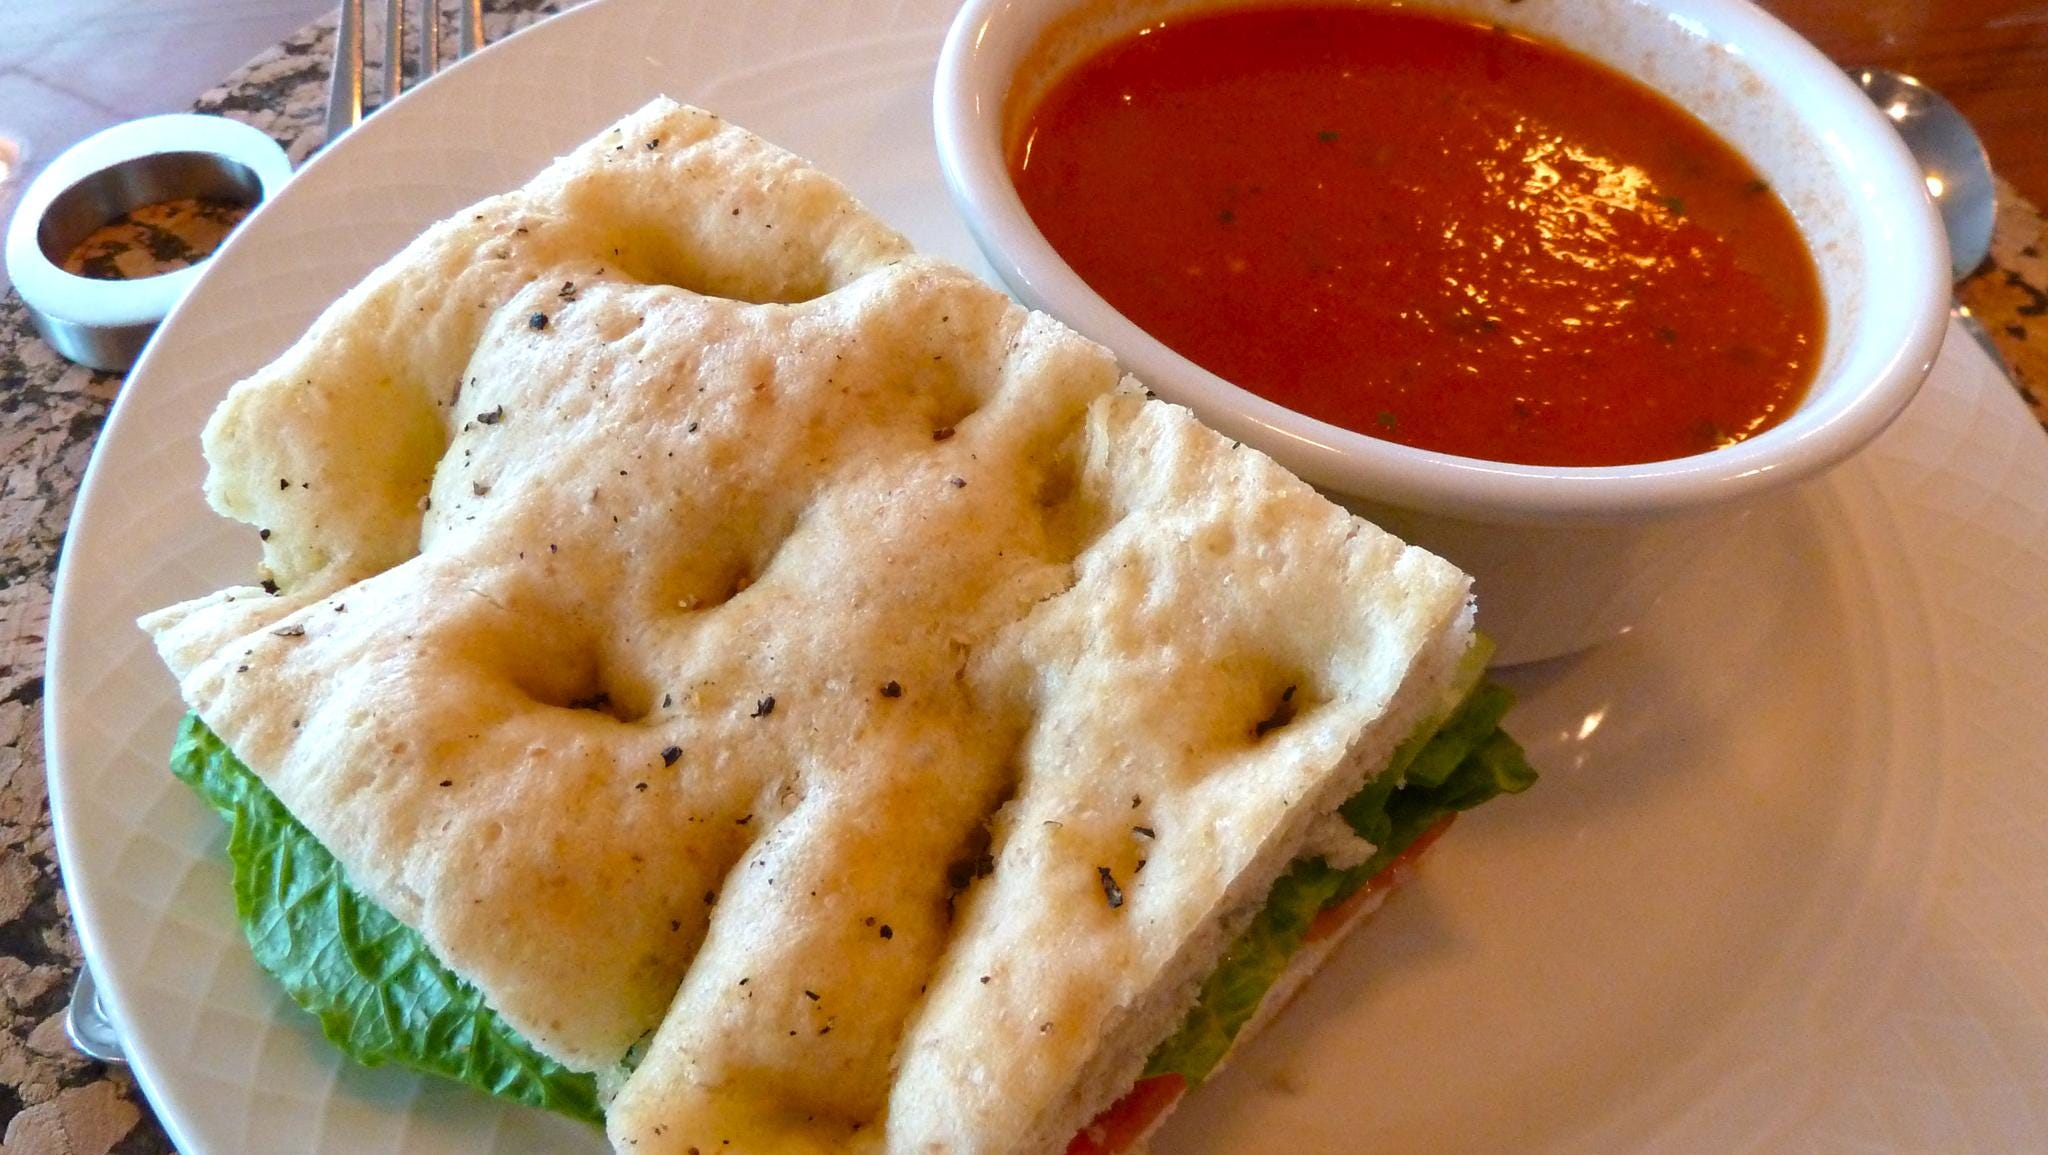 Light lunch fare is made from all natural, fresh ingredients, such as this turkey focaccia sandwich with tomato basil soup.